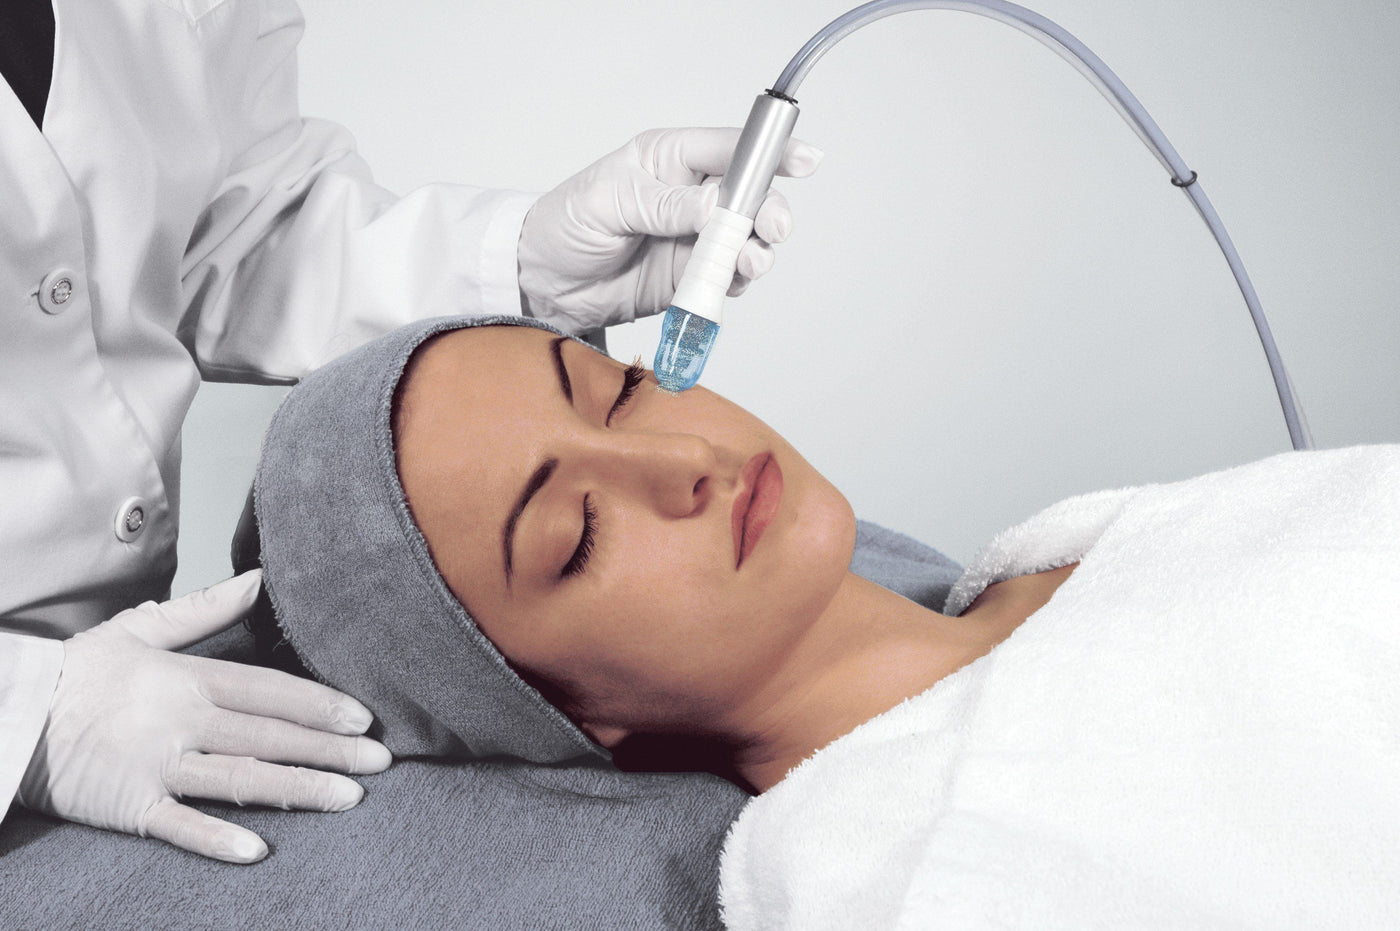 collections/Microdermabrasion_249f2829-771f-4ab3-9a31-f7ff4bc5aa79.jpg